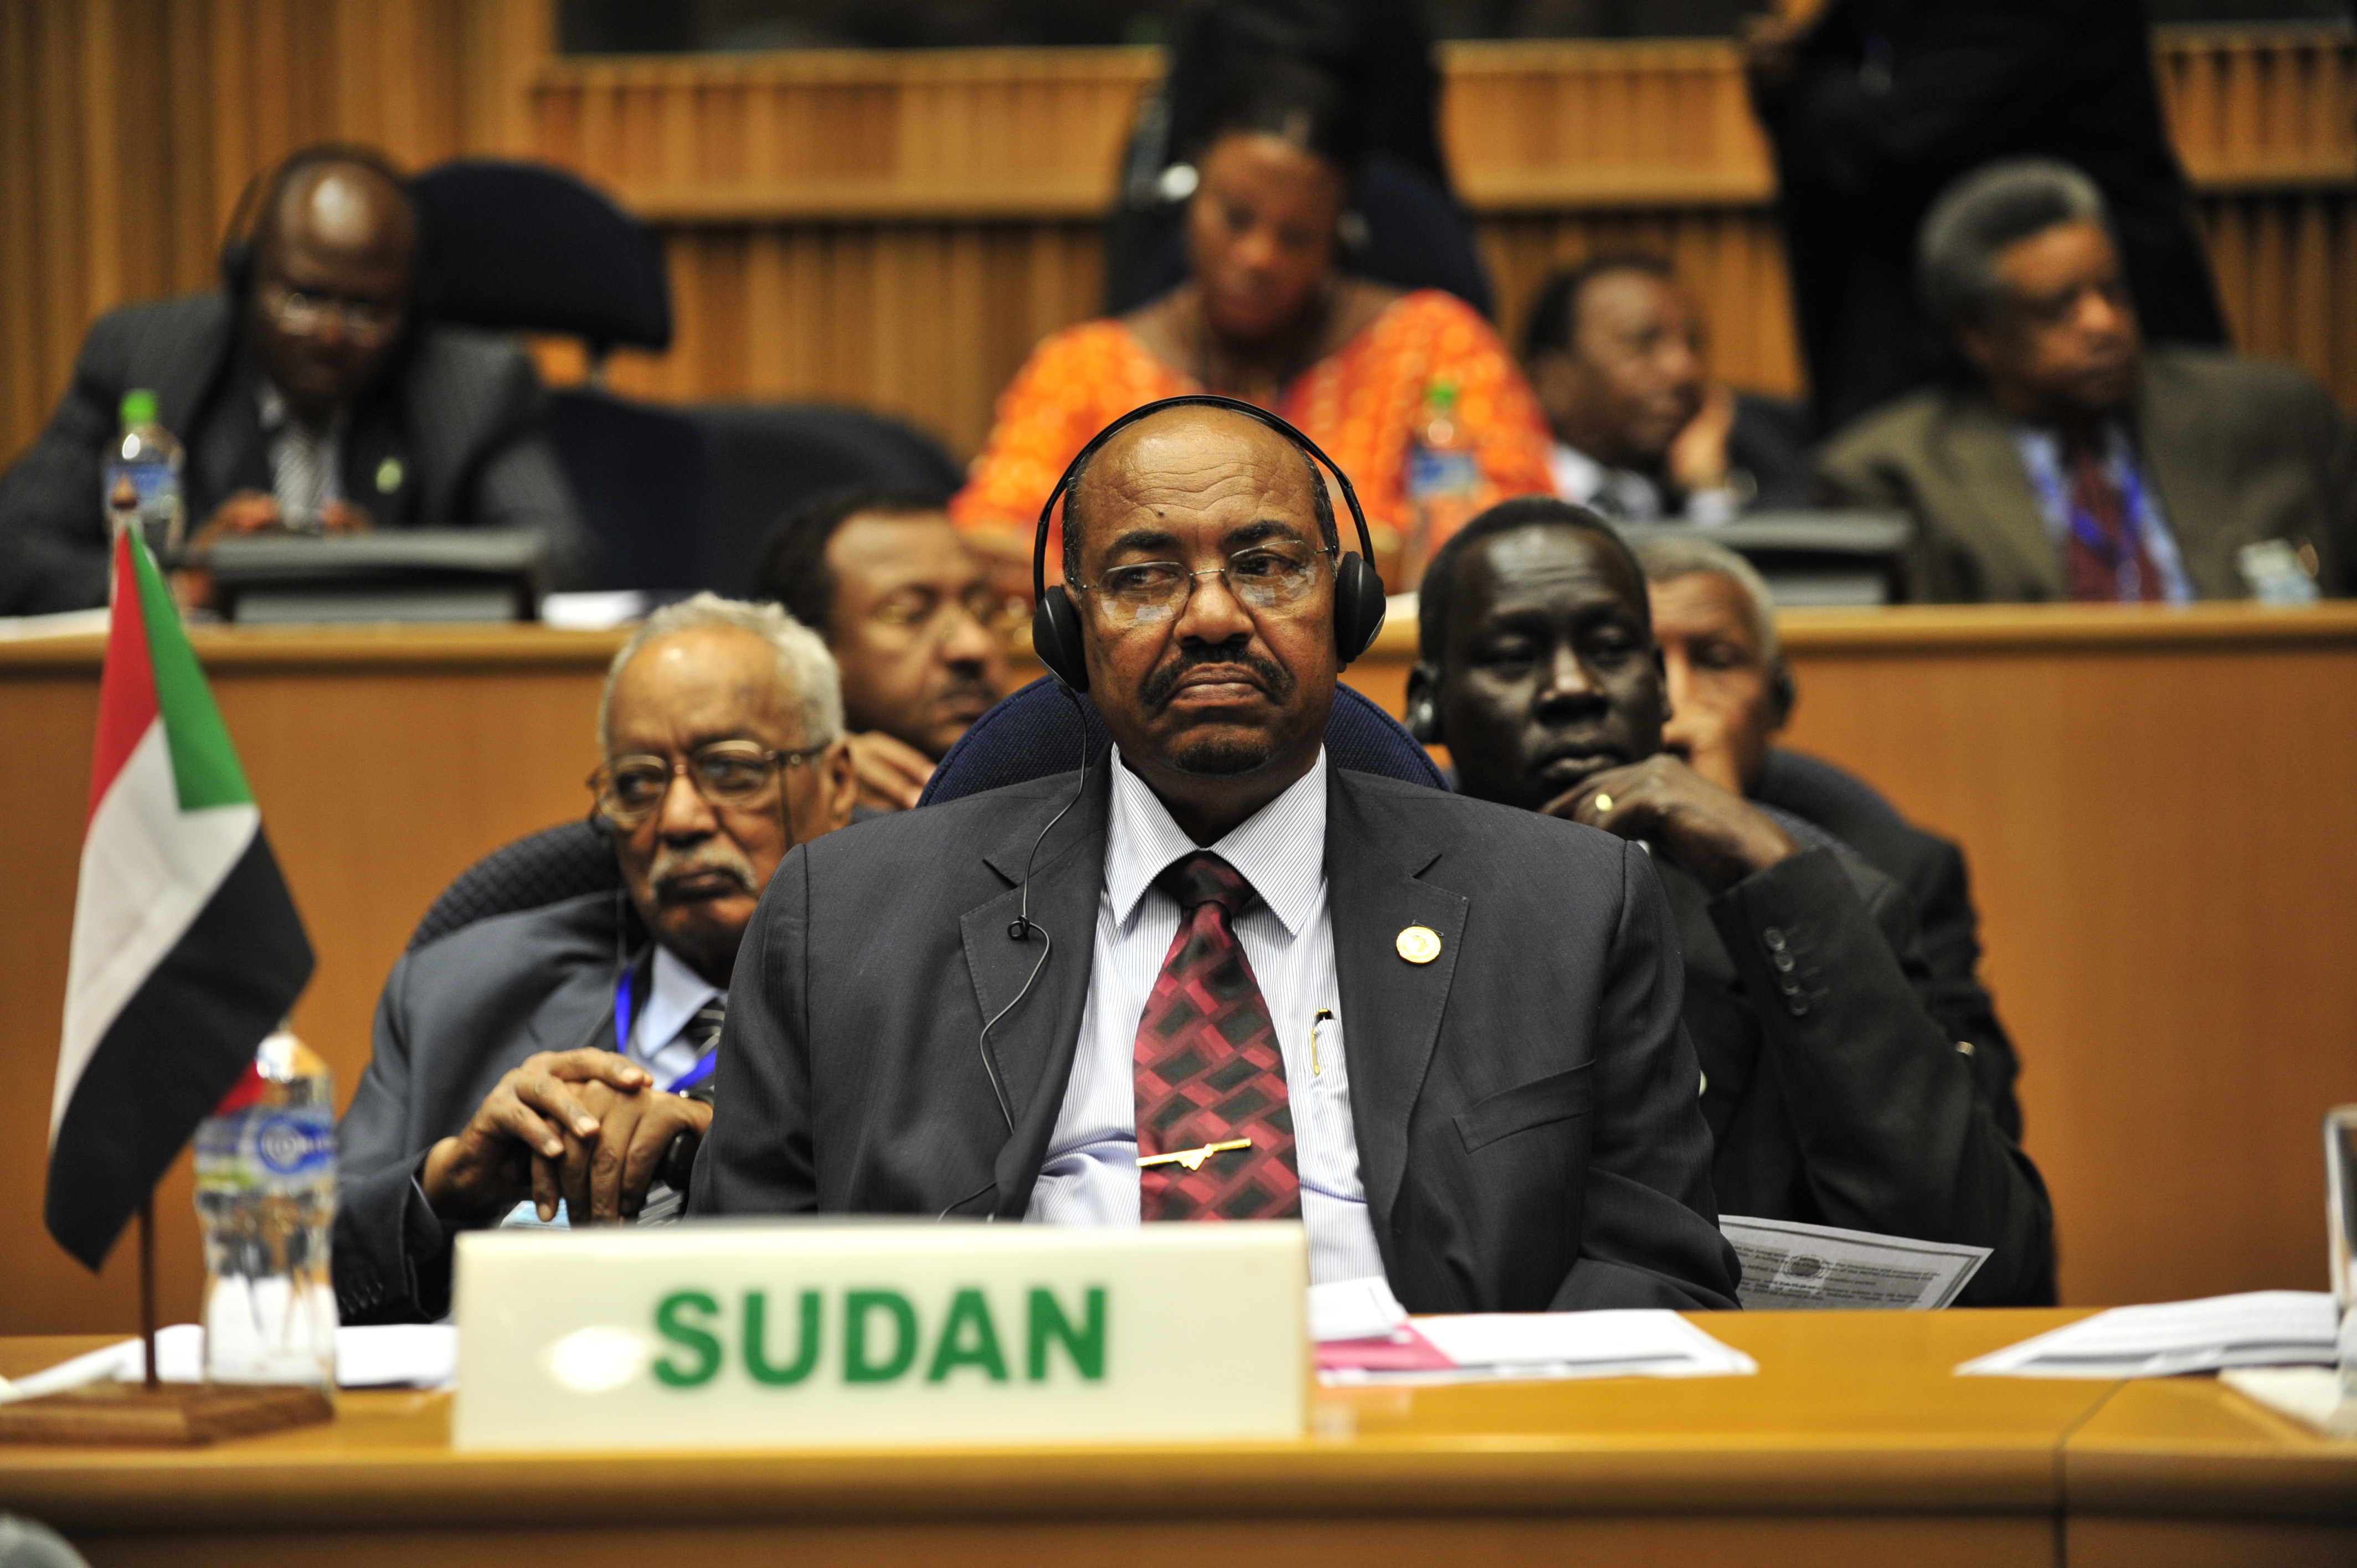 Sudan to turn ex-president over to ICC to stand trial for genocide